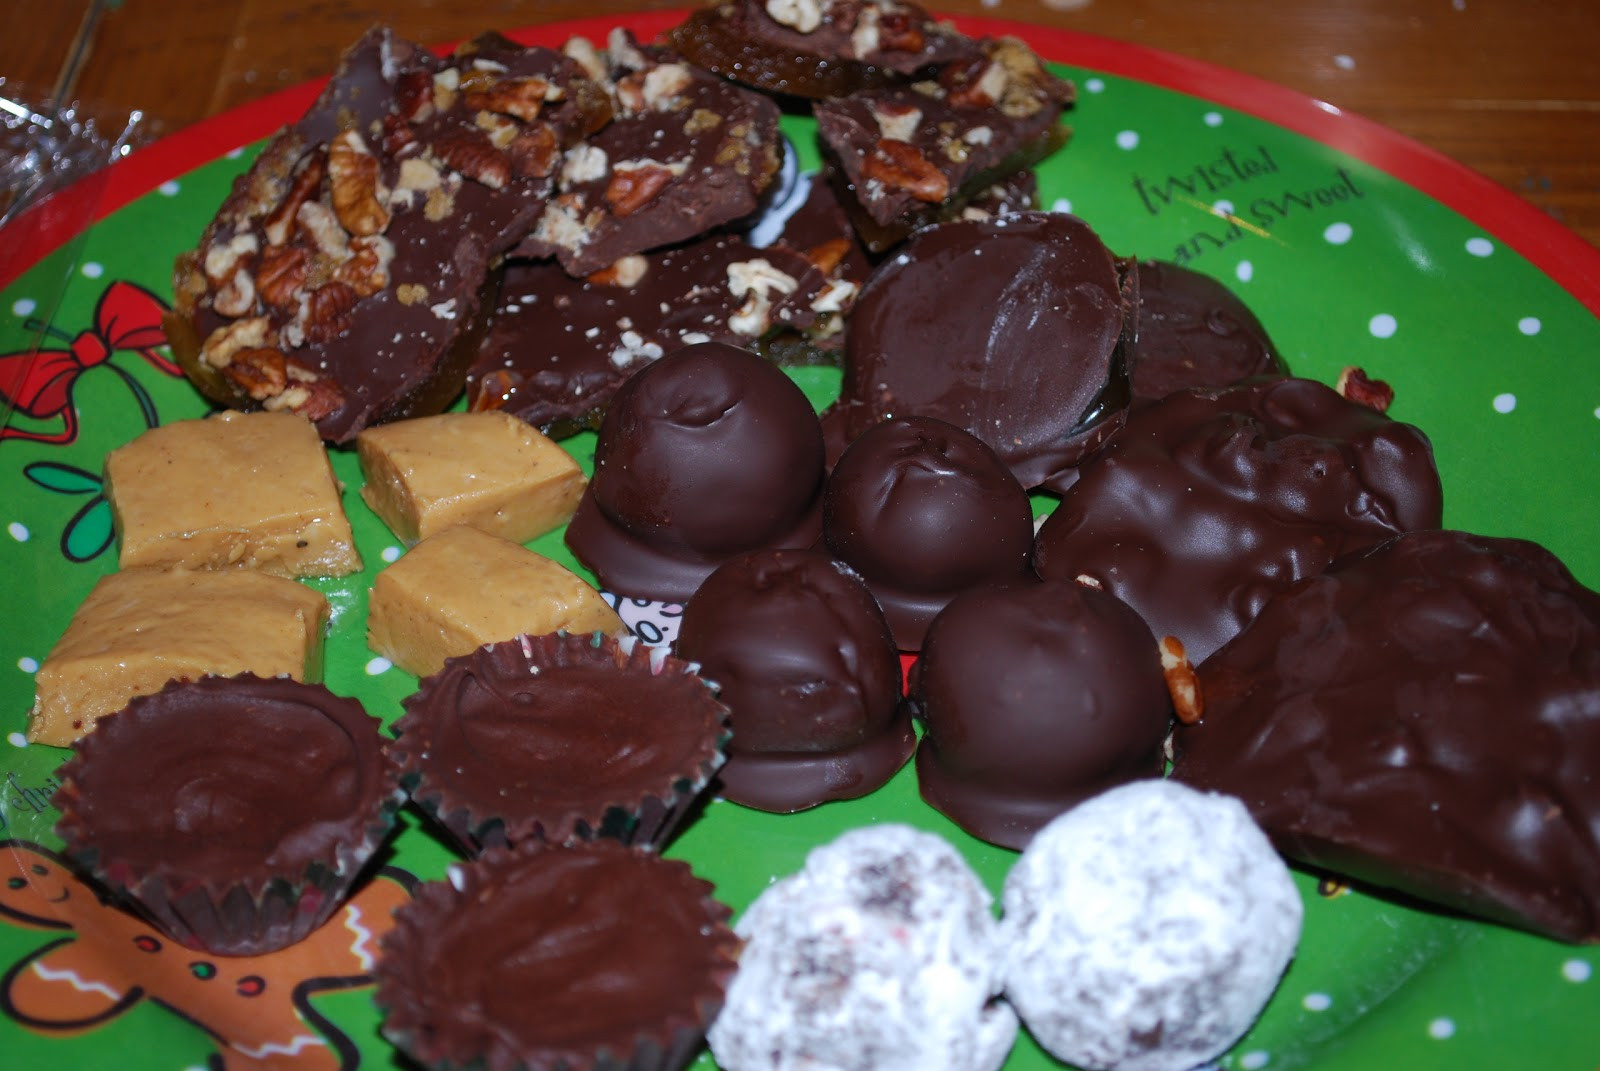 Christmas Candy Recipe  The Peaceful Kitchen Delicious Vegan Christmas Candy Recipes